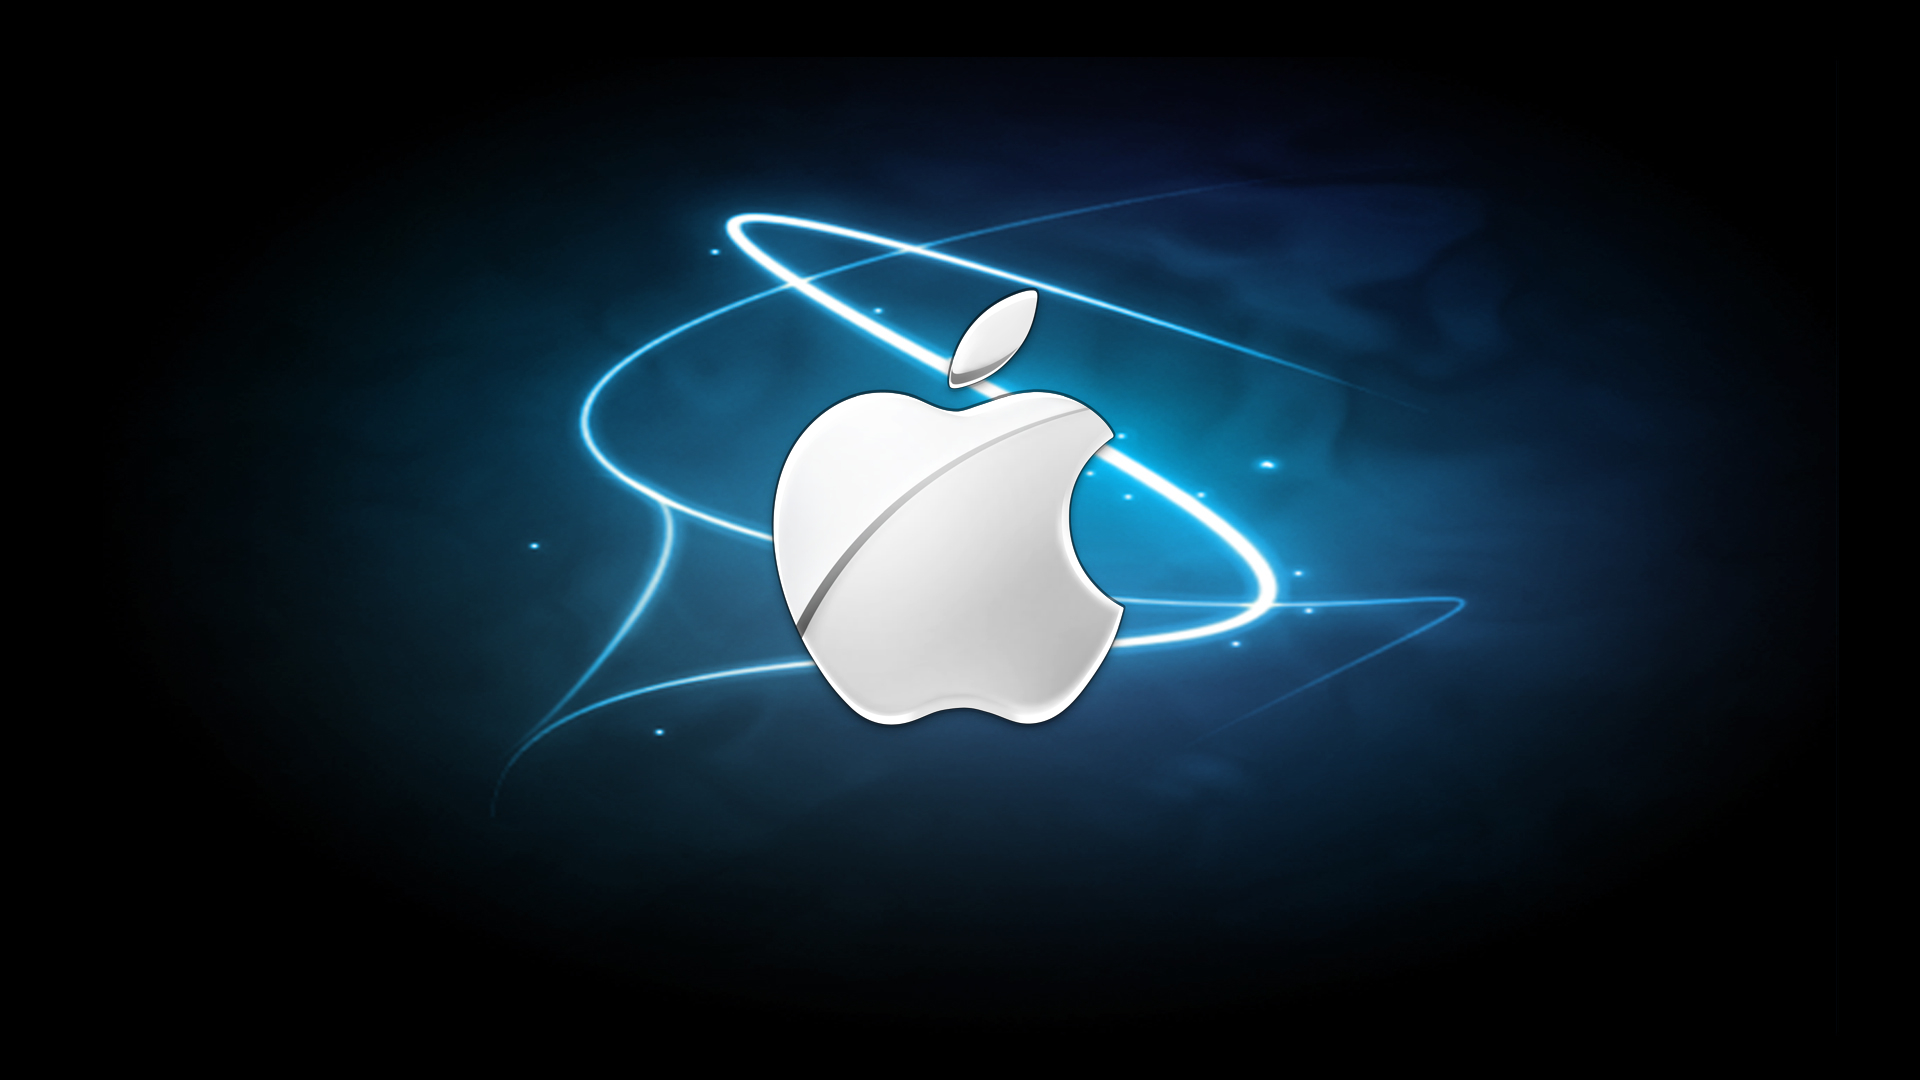 1000+ images about Apple logo wallpaper on Pinterest | Iphone 5